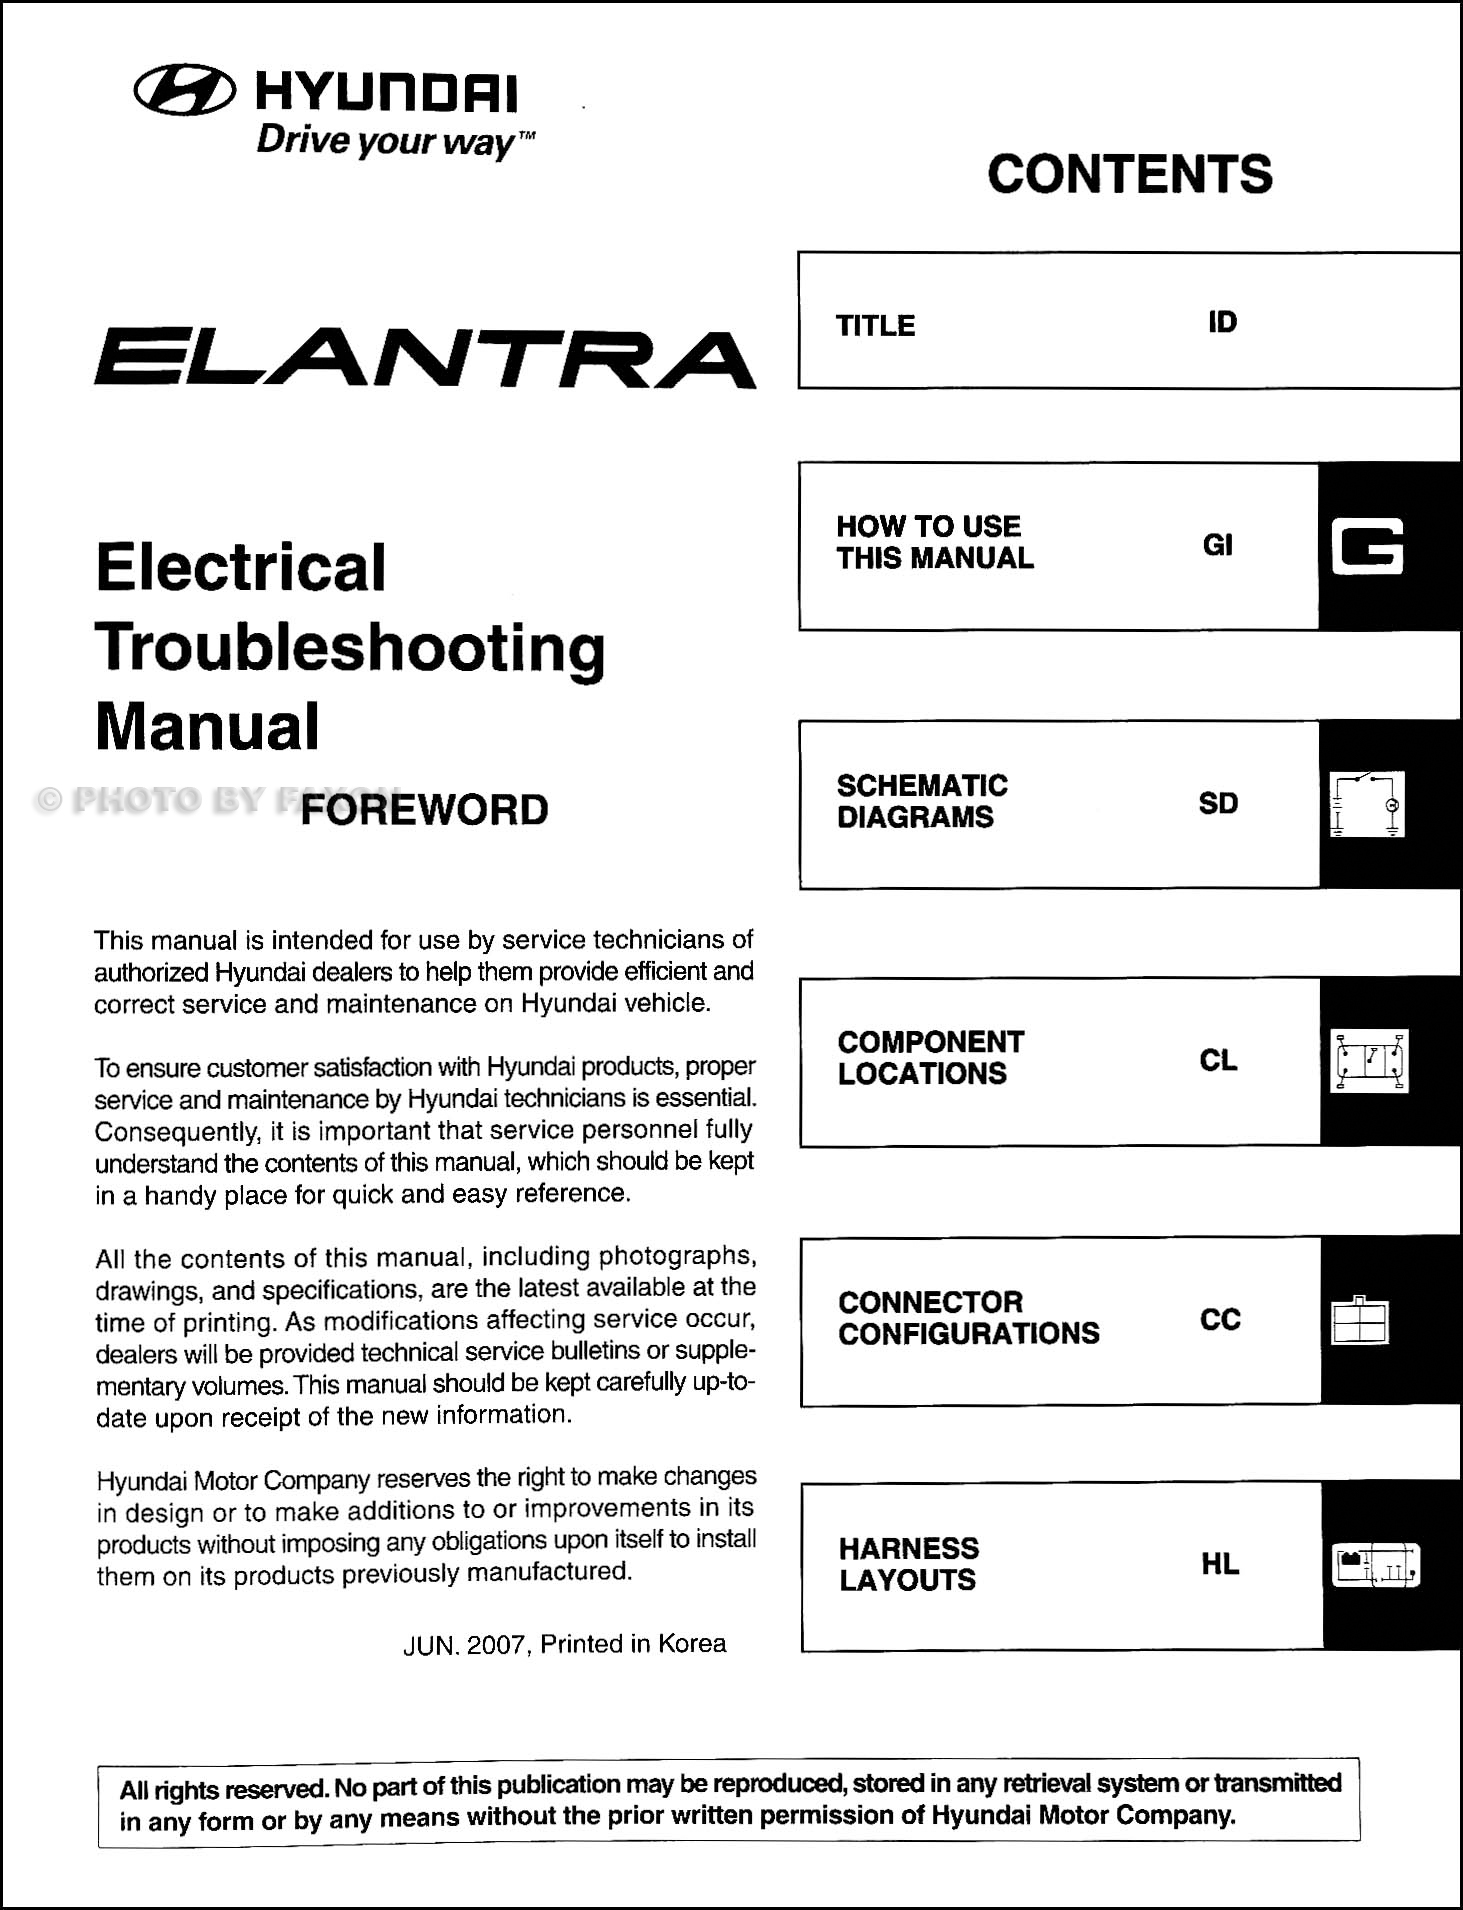 hight resolution of hyundai veracruz wiring diagram simple wiring schema 2005 hyundai elantra wiring diagram hyundai veracruz wiring diagram